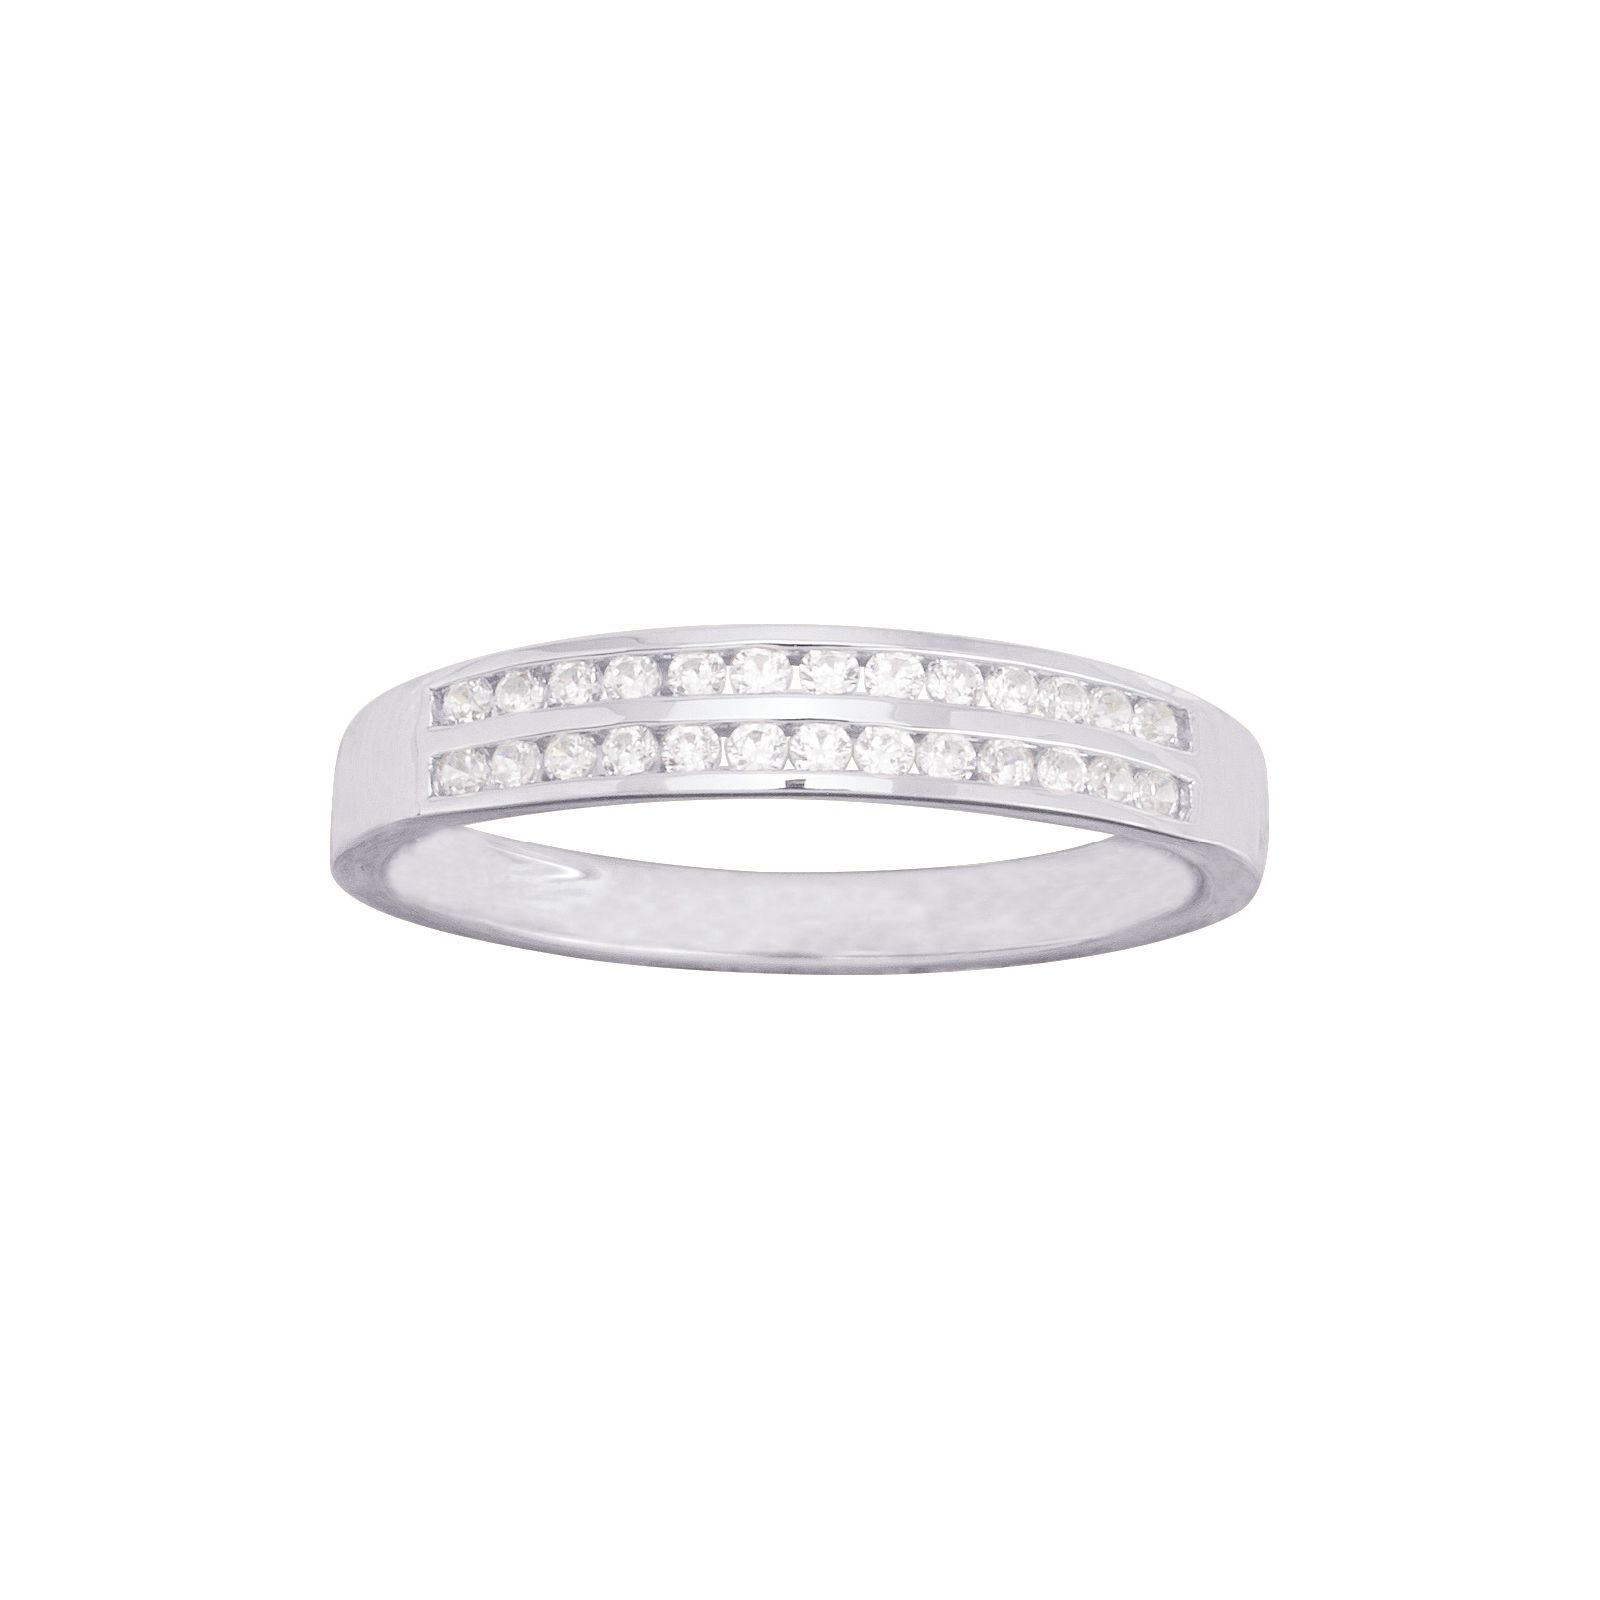 Alliance en or blanc et diamants de 0.12ct vue 1